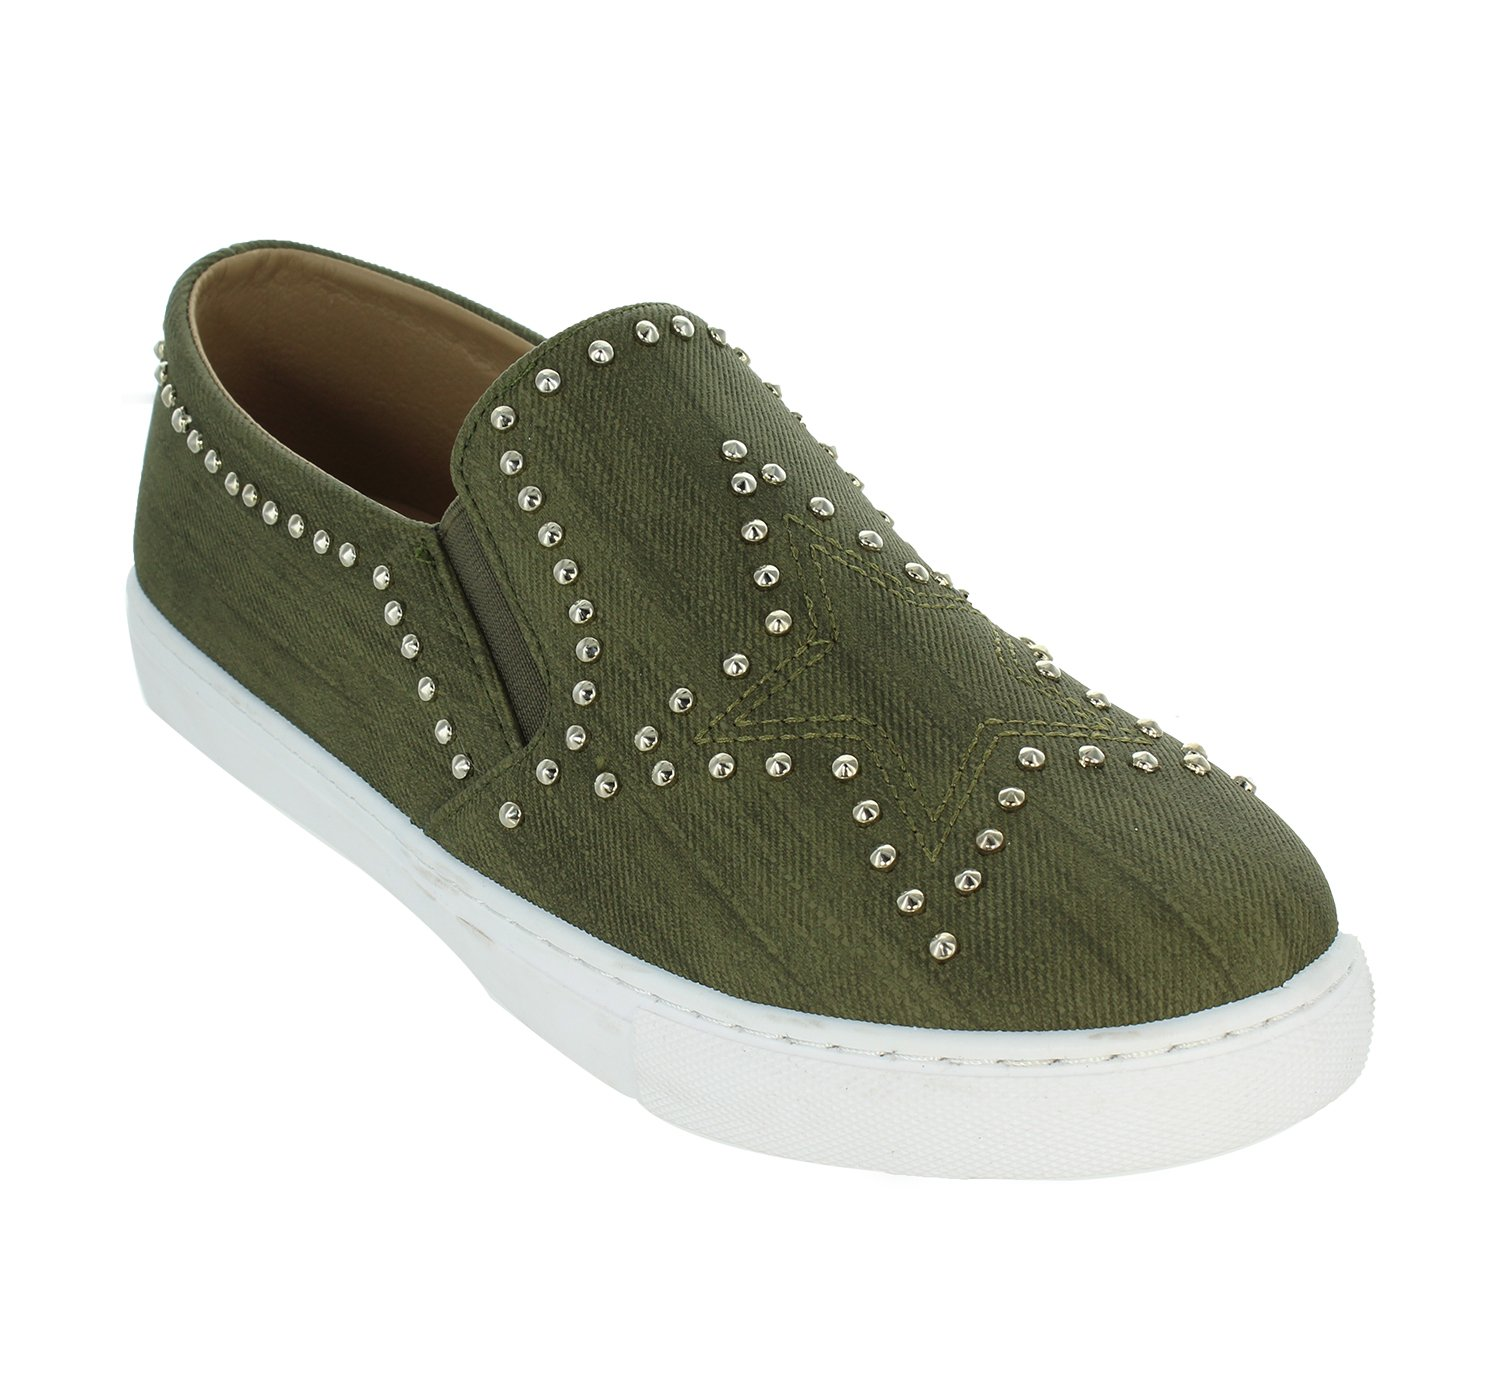 Only U Star Pattern Denim Metal Studs Slip On Flat Sneaker B077Y4TG91 7.5 B(M) US|Khaki